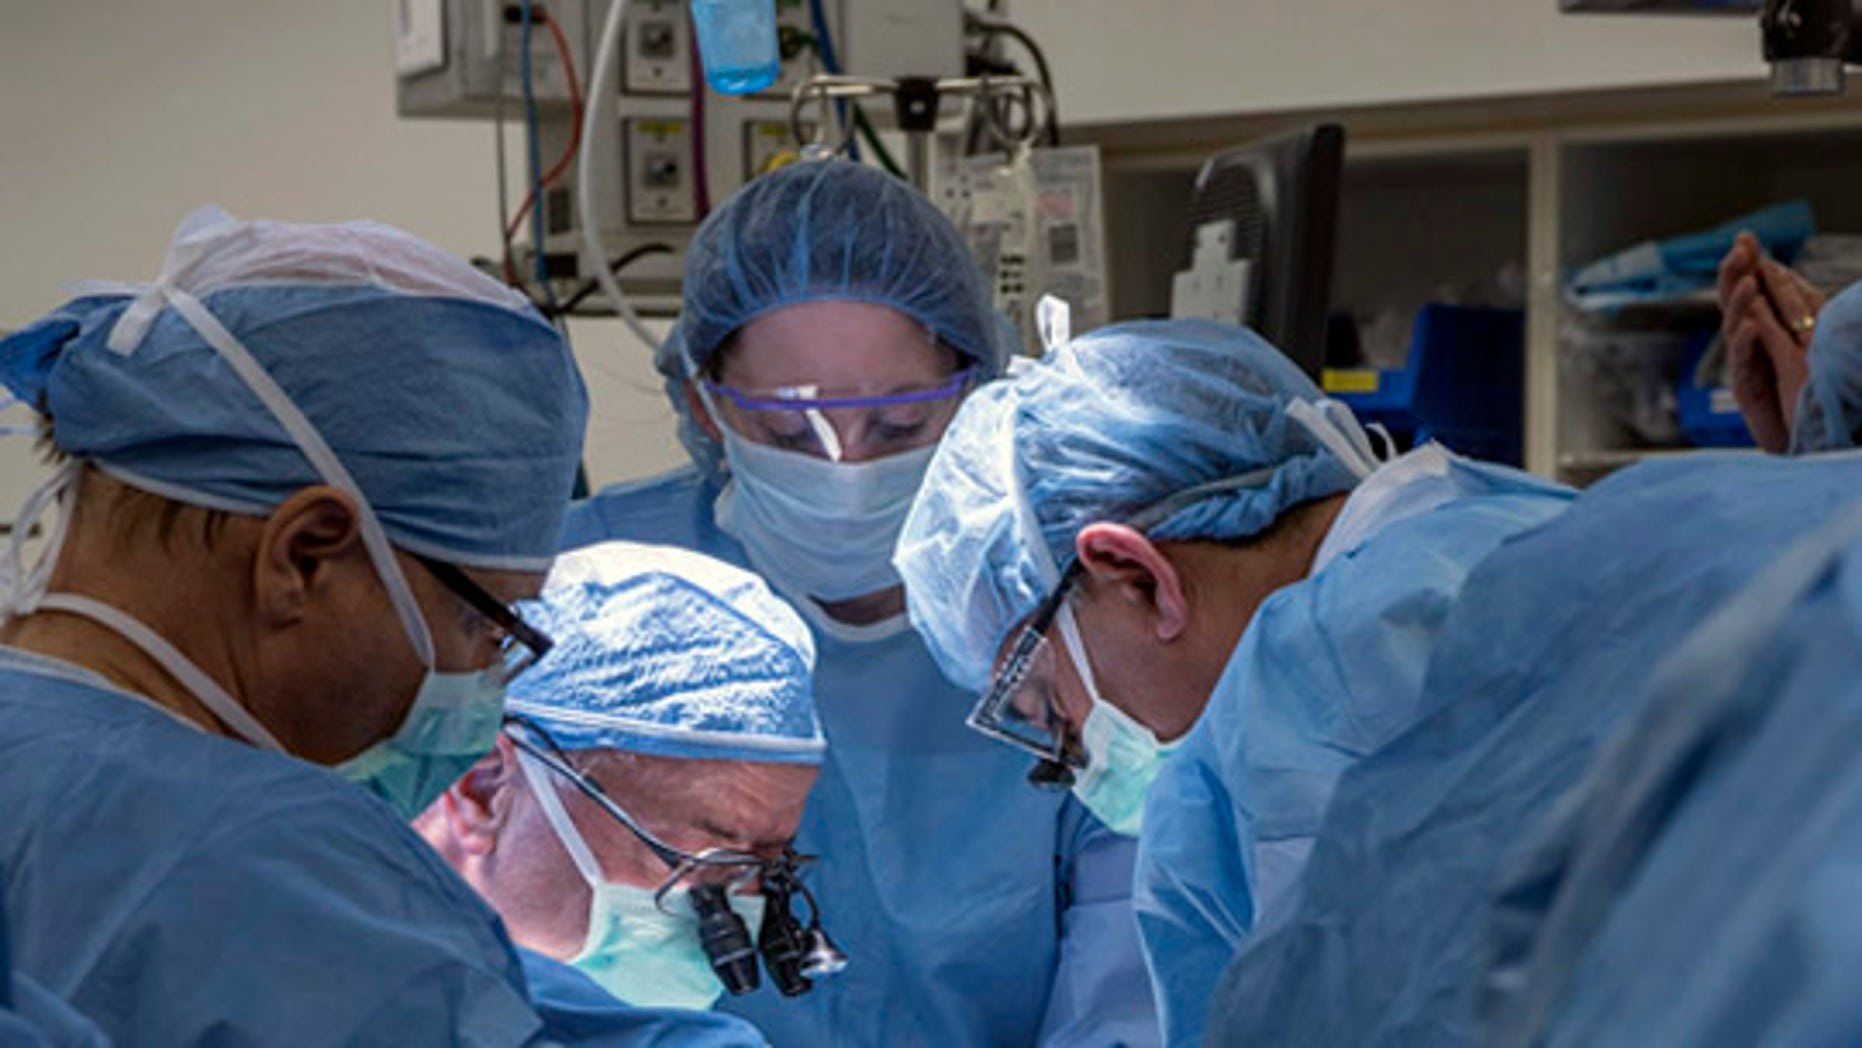 Ffeb. 24, 2016: In this photo provided by Cleveland Clinic Center, a team of Cleveland Clinic transplant surgeons and gynecological surgeons perform the nation''s first uterus transplant during a nine-hour surgery in Cleveland. (Cleveland Clinic Center via AP)